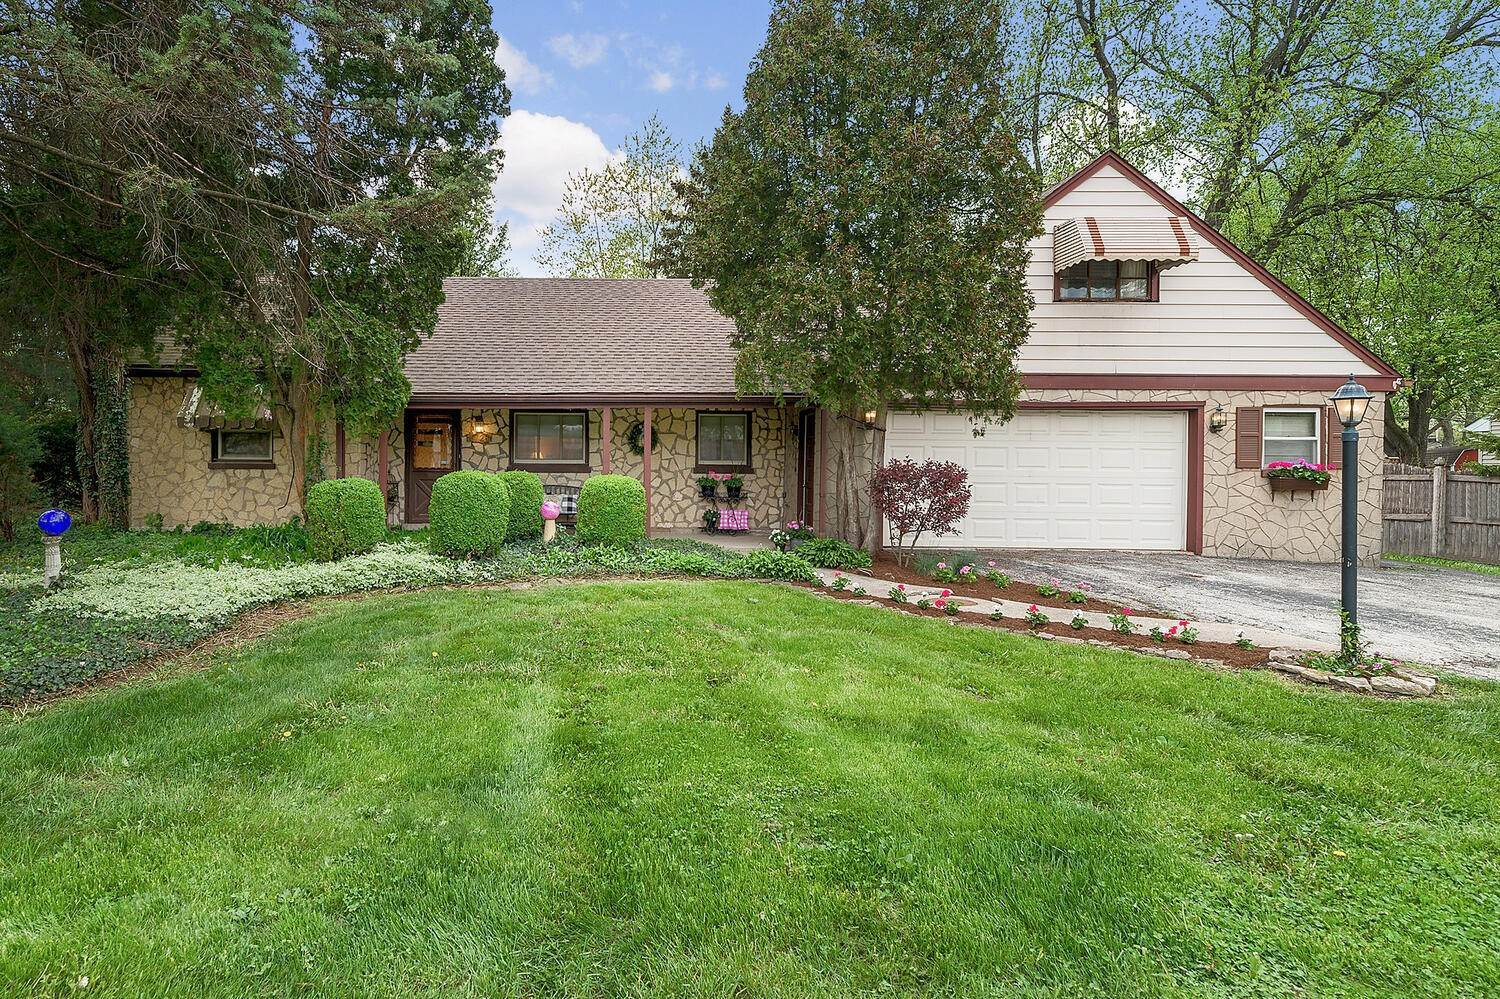 Single Family Homes for Sale at 5728 Willow Springs Road La Grange Highlands, Illinois 60525 United States